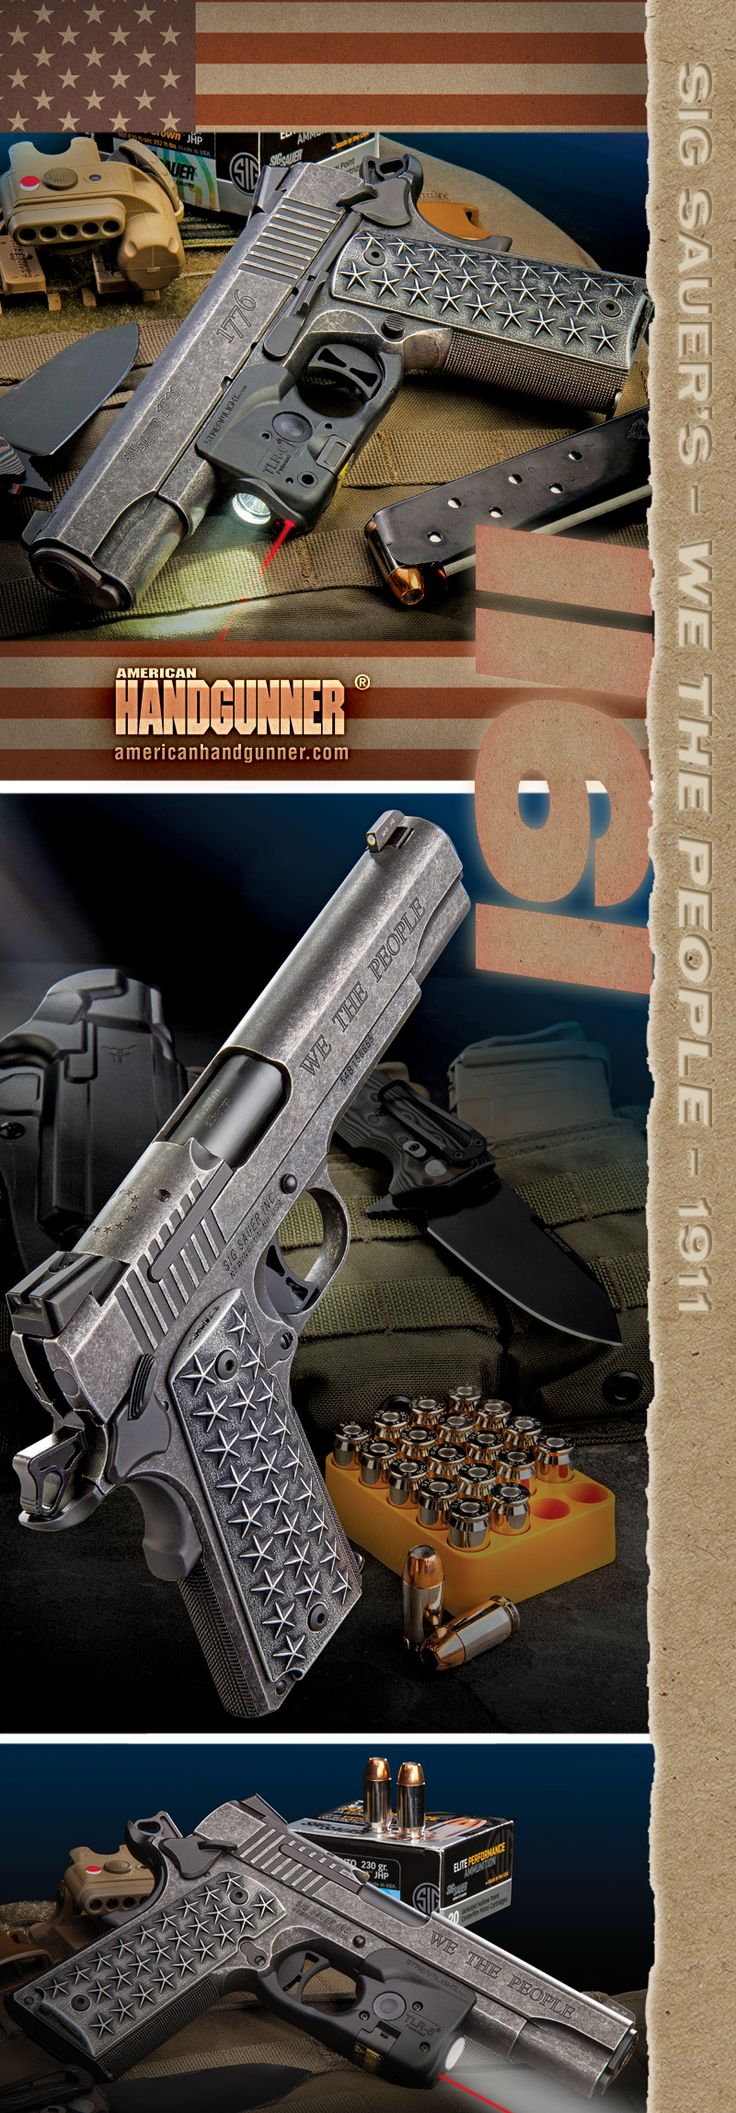 """SIG SAUER """"We The People"""" 1911   By Will Dabbs, MD   A .45 Capturing The Essence Of America   When facing a common foe We the People stand ever strong, united and unbreakable. And SIG has made a 1911 for us that captures this spirit.   © American Handgunner 2018"""